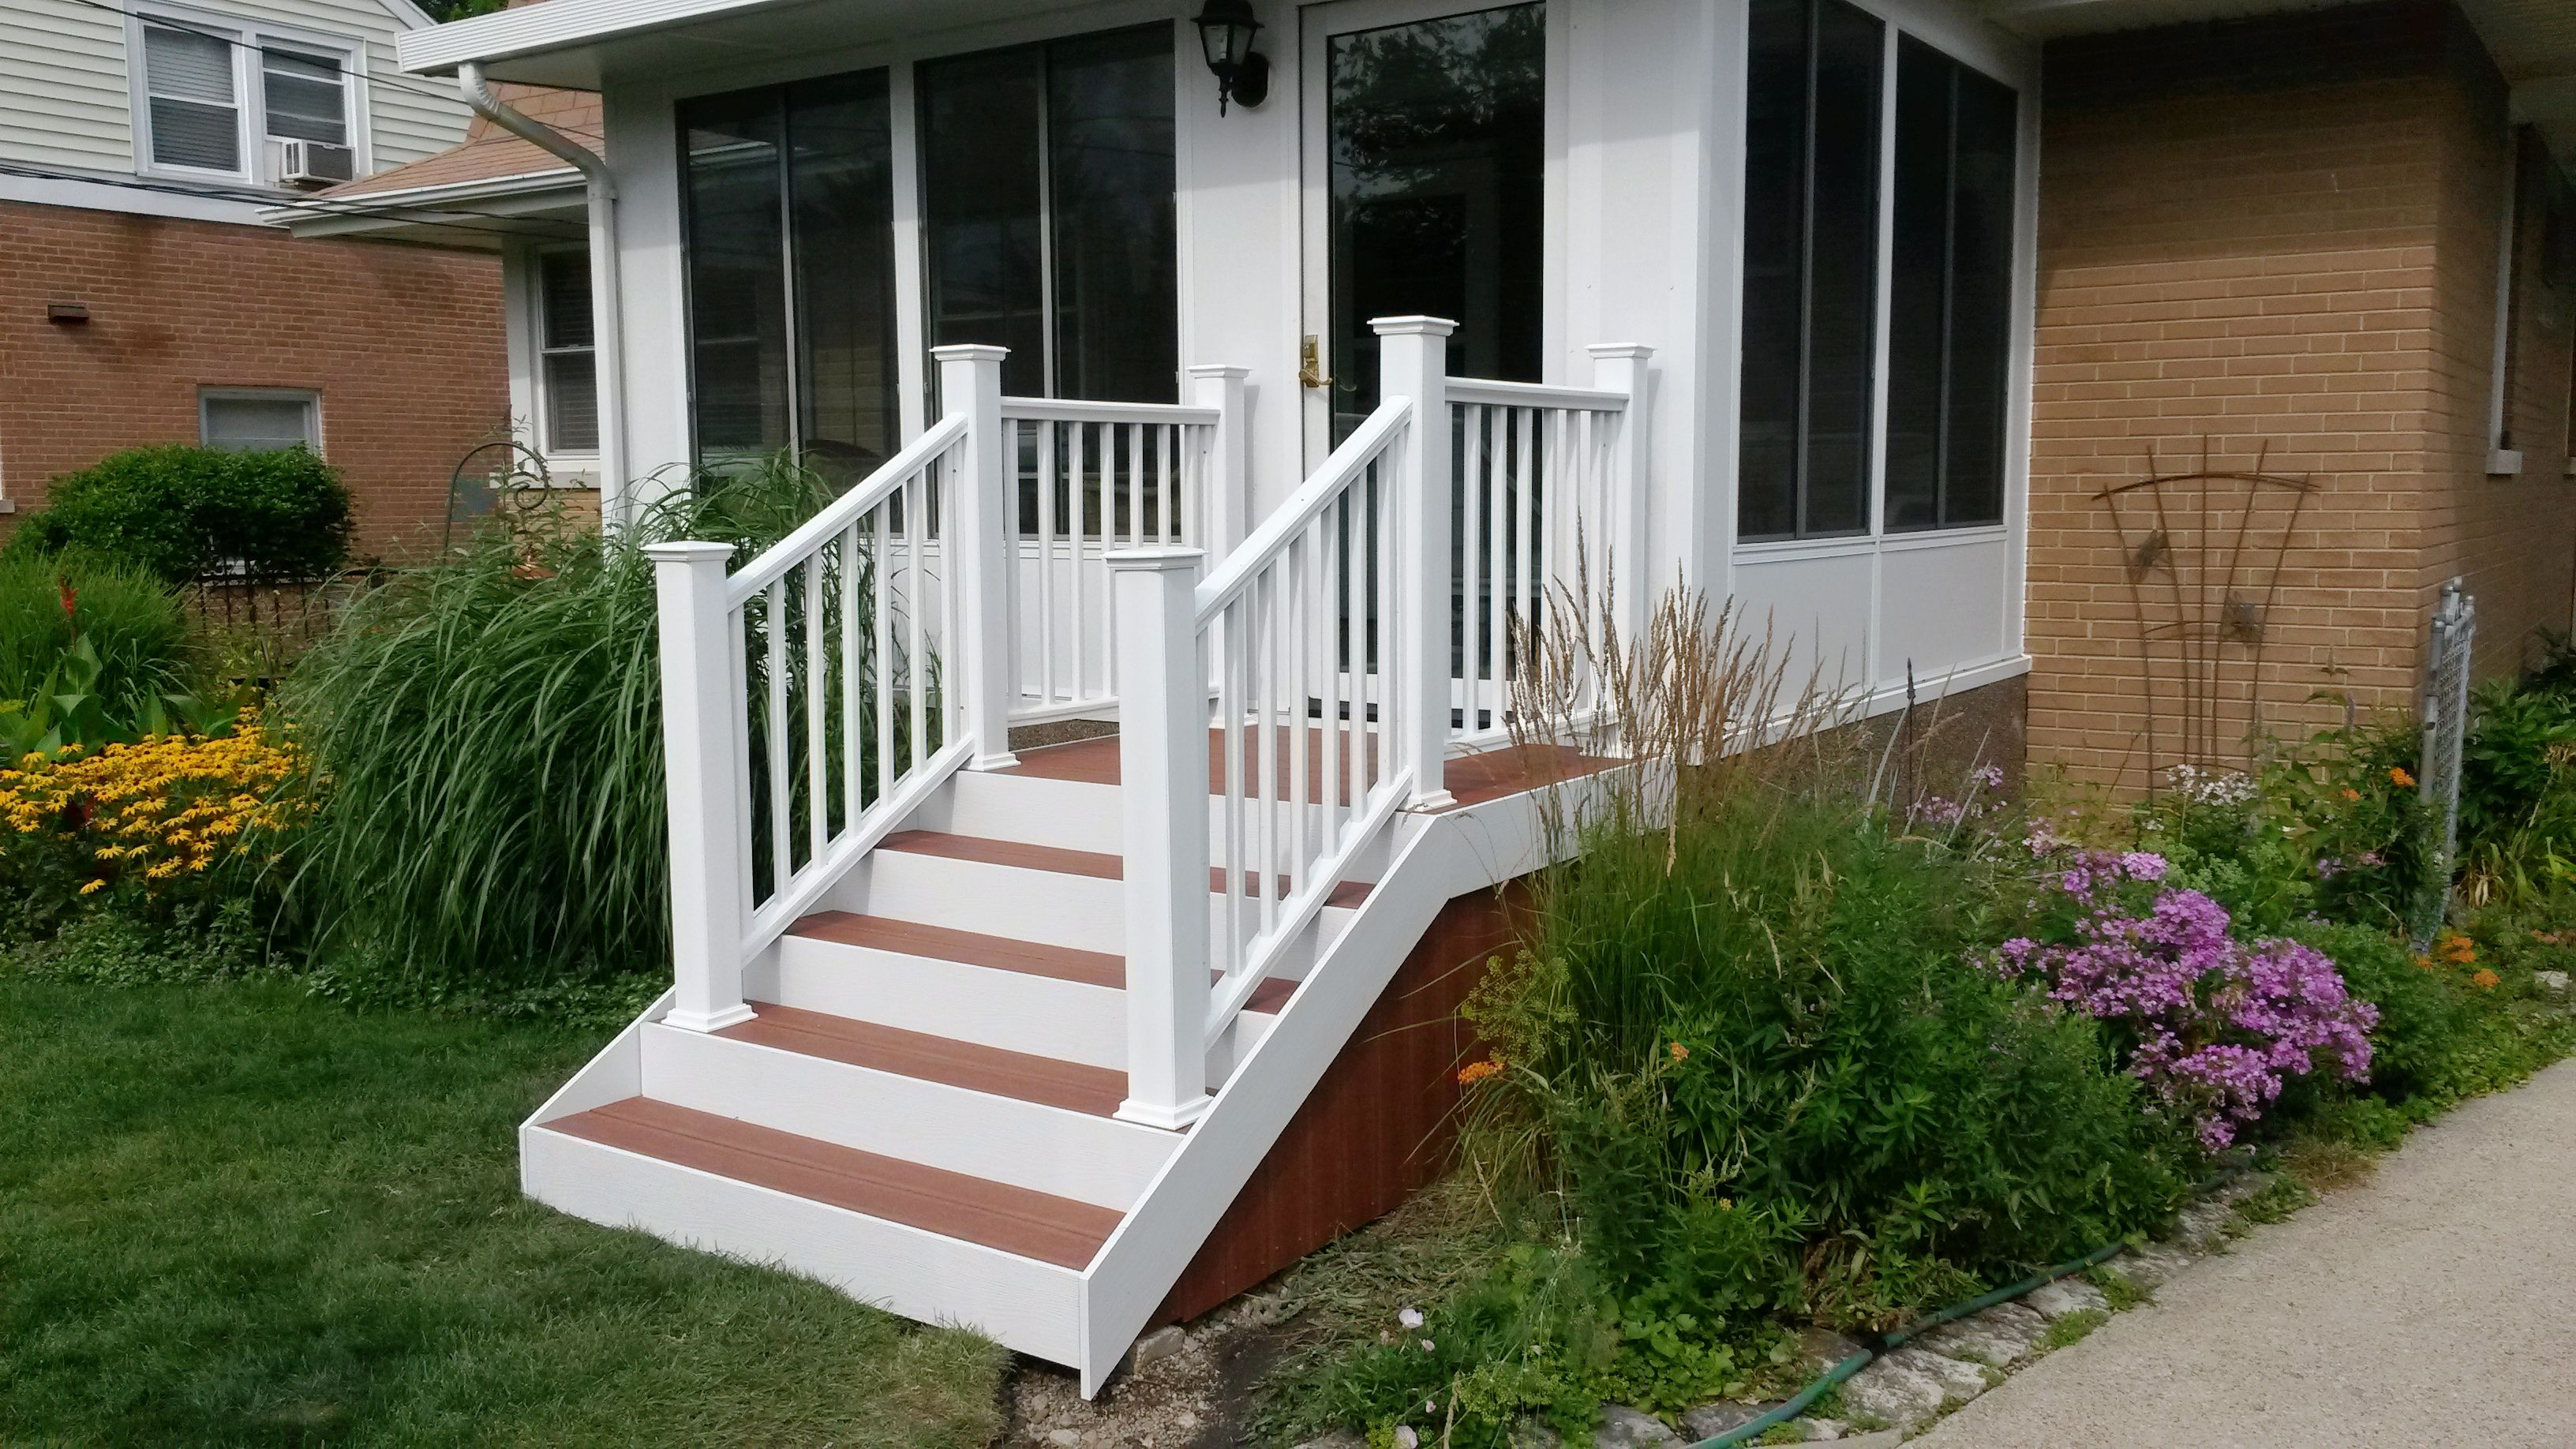 Best Menards Ultradeck Stairs In The Rustic Style With Redwood 400 x 300